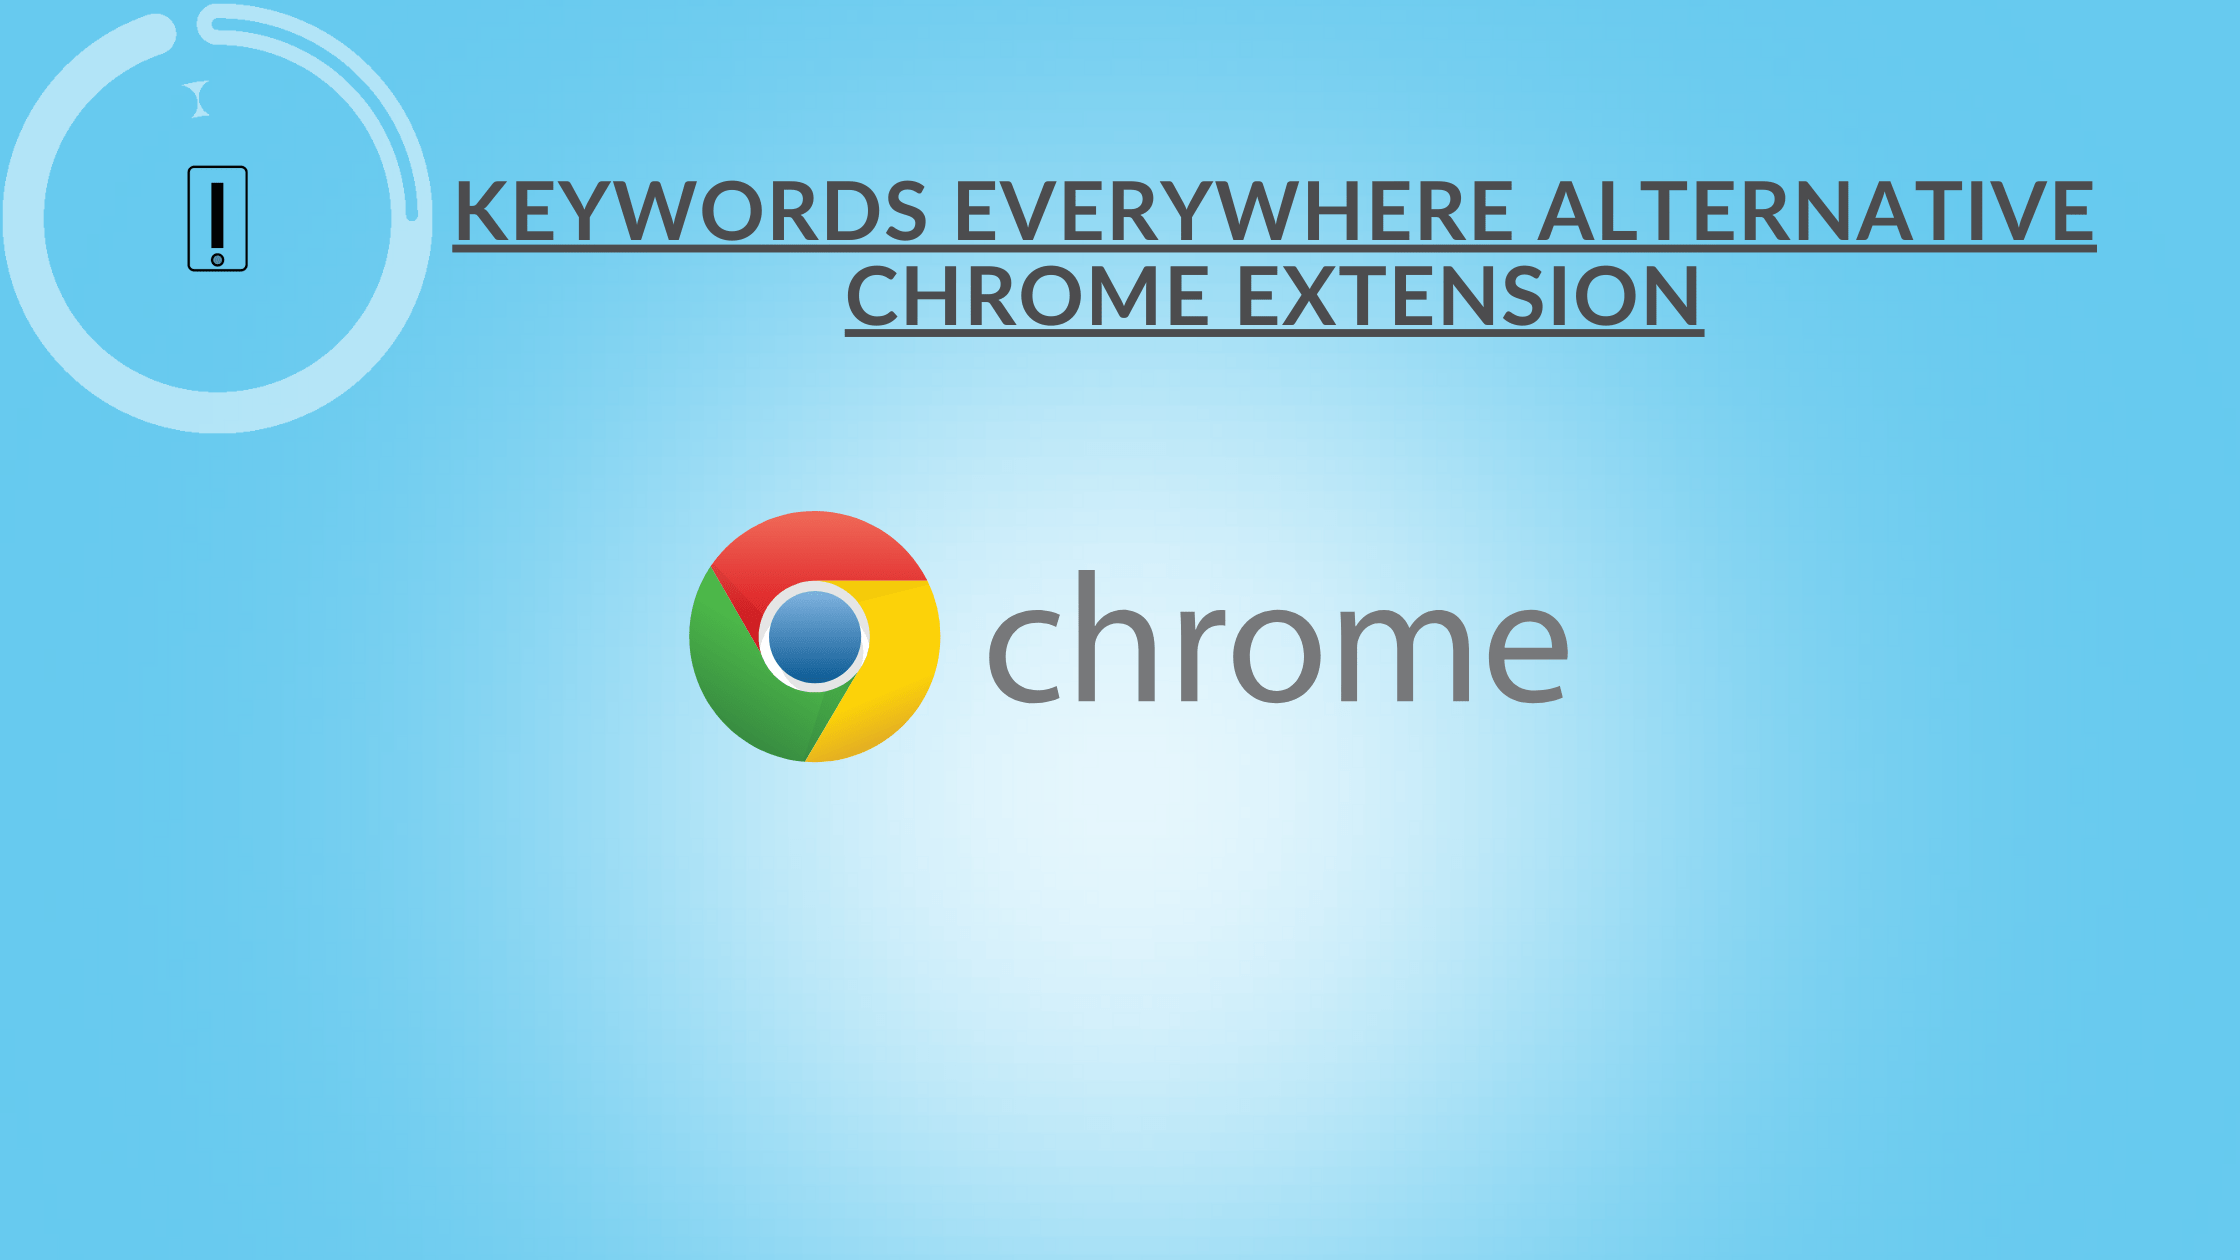 Keywords Everywhere Alternative Chrome Extension WMS Everywhere